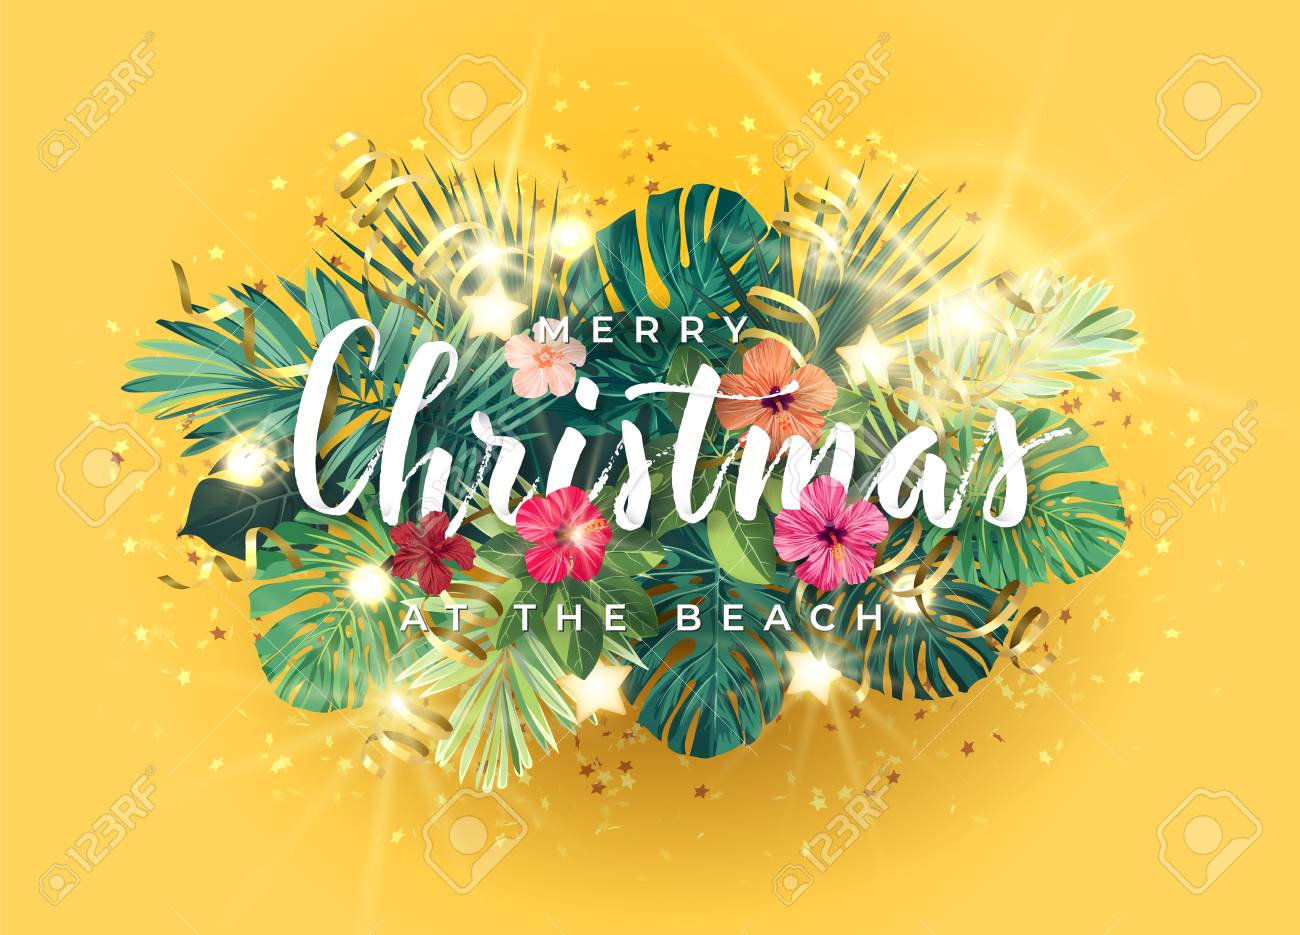 Tropical Christmas.Tropical Christmas On The Beach Design With Monstera Palm Leaves